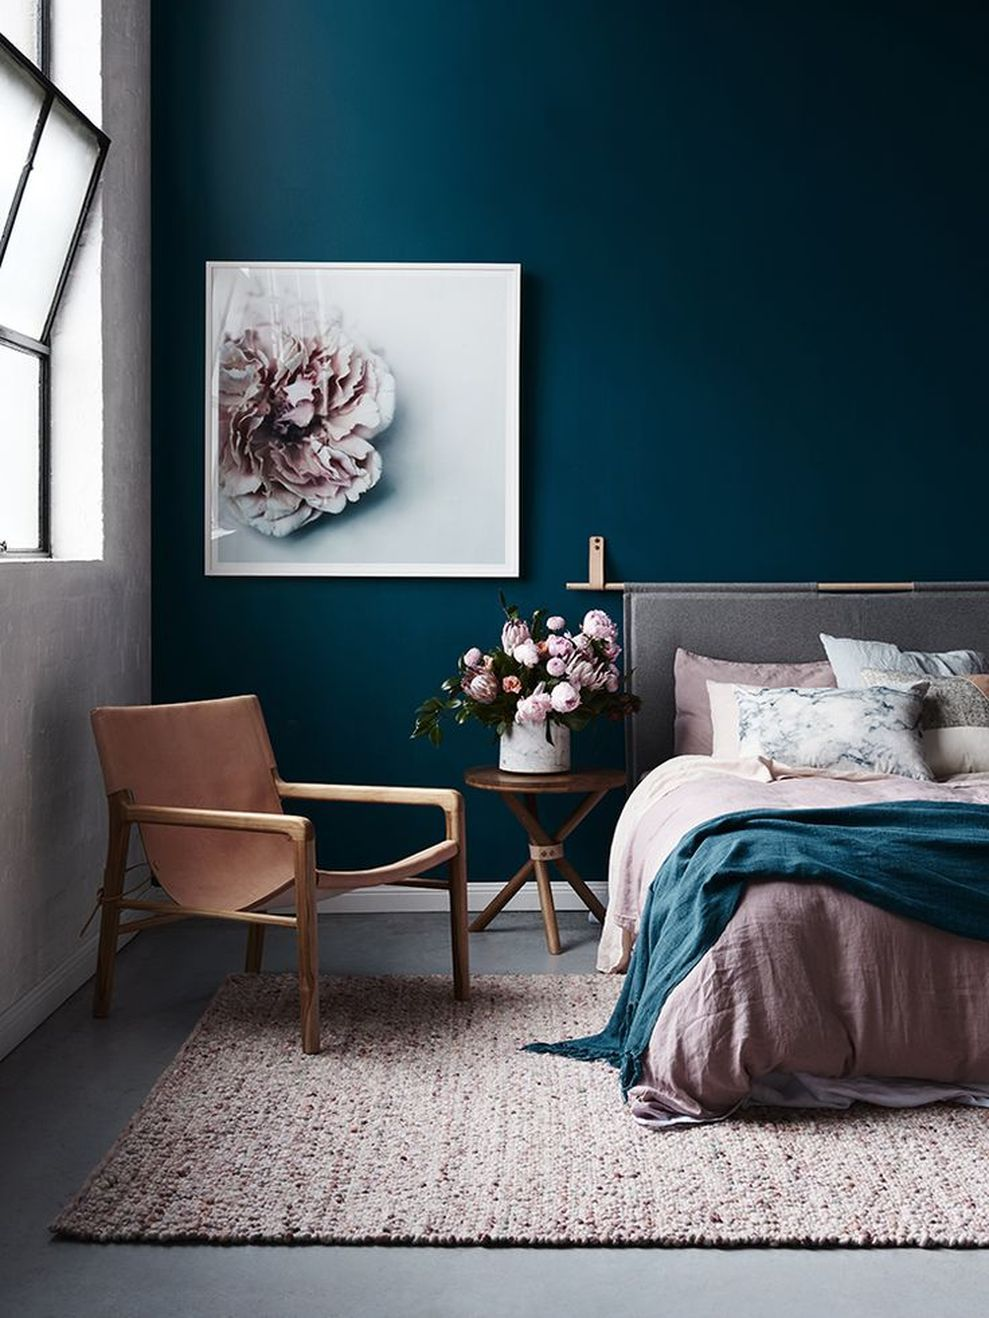 Blue Bedroom Designs Ideas Alluring 86 Cute Bedroom Design Ideas With Pink And Green Walls  Green Inspiration